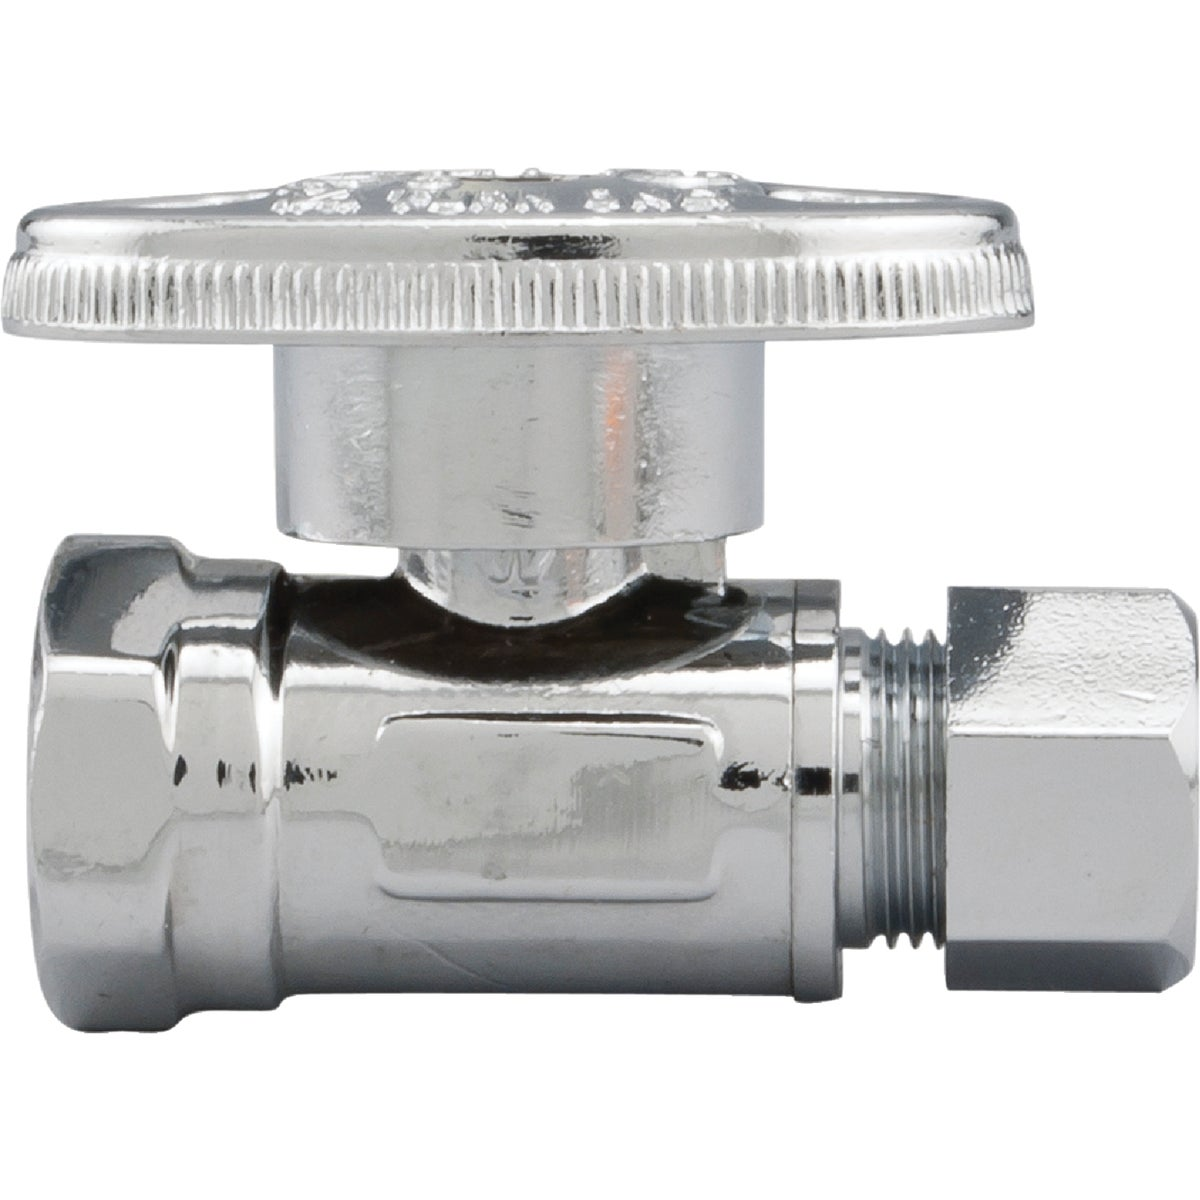 3/8FIPX3/8C STRT VALVE - LFPBQT-600 by Watts Regulator Co